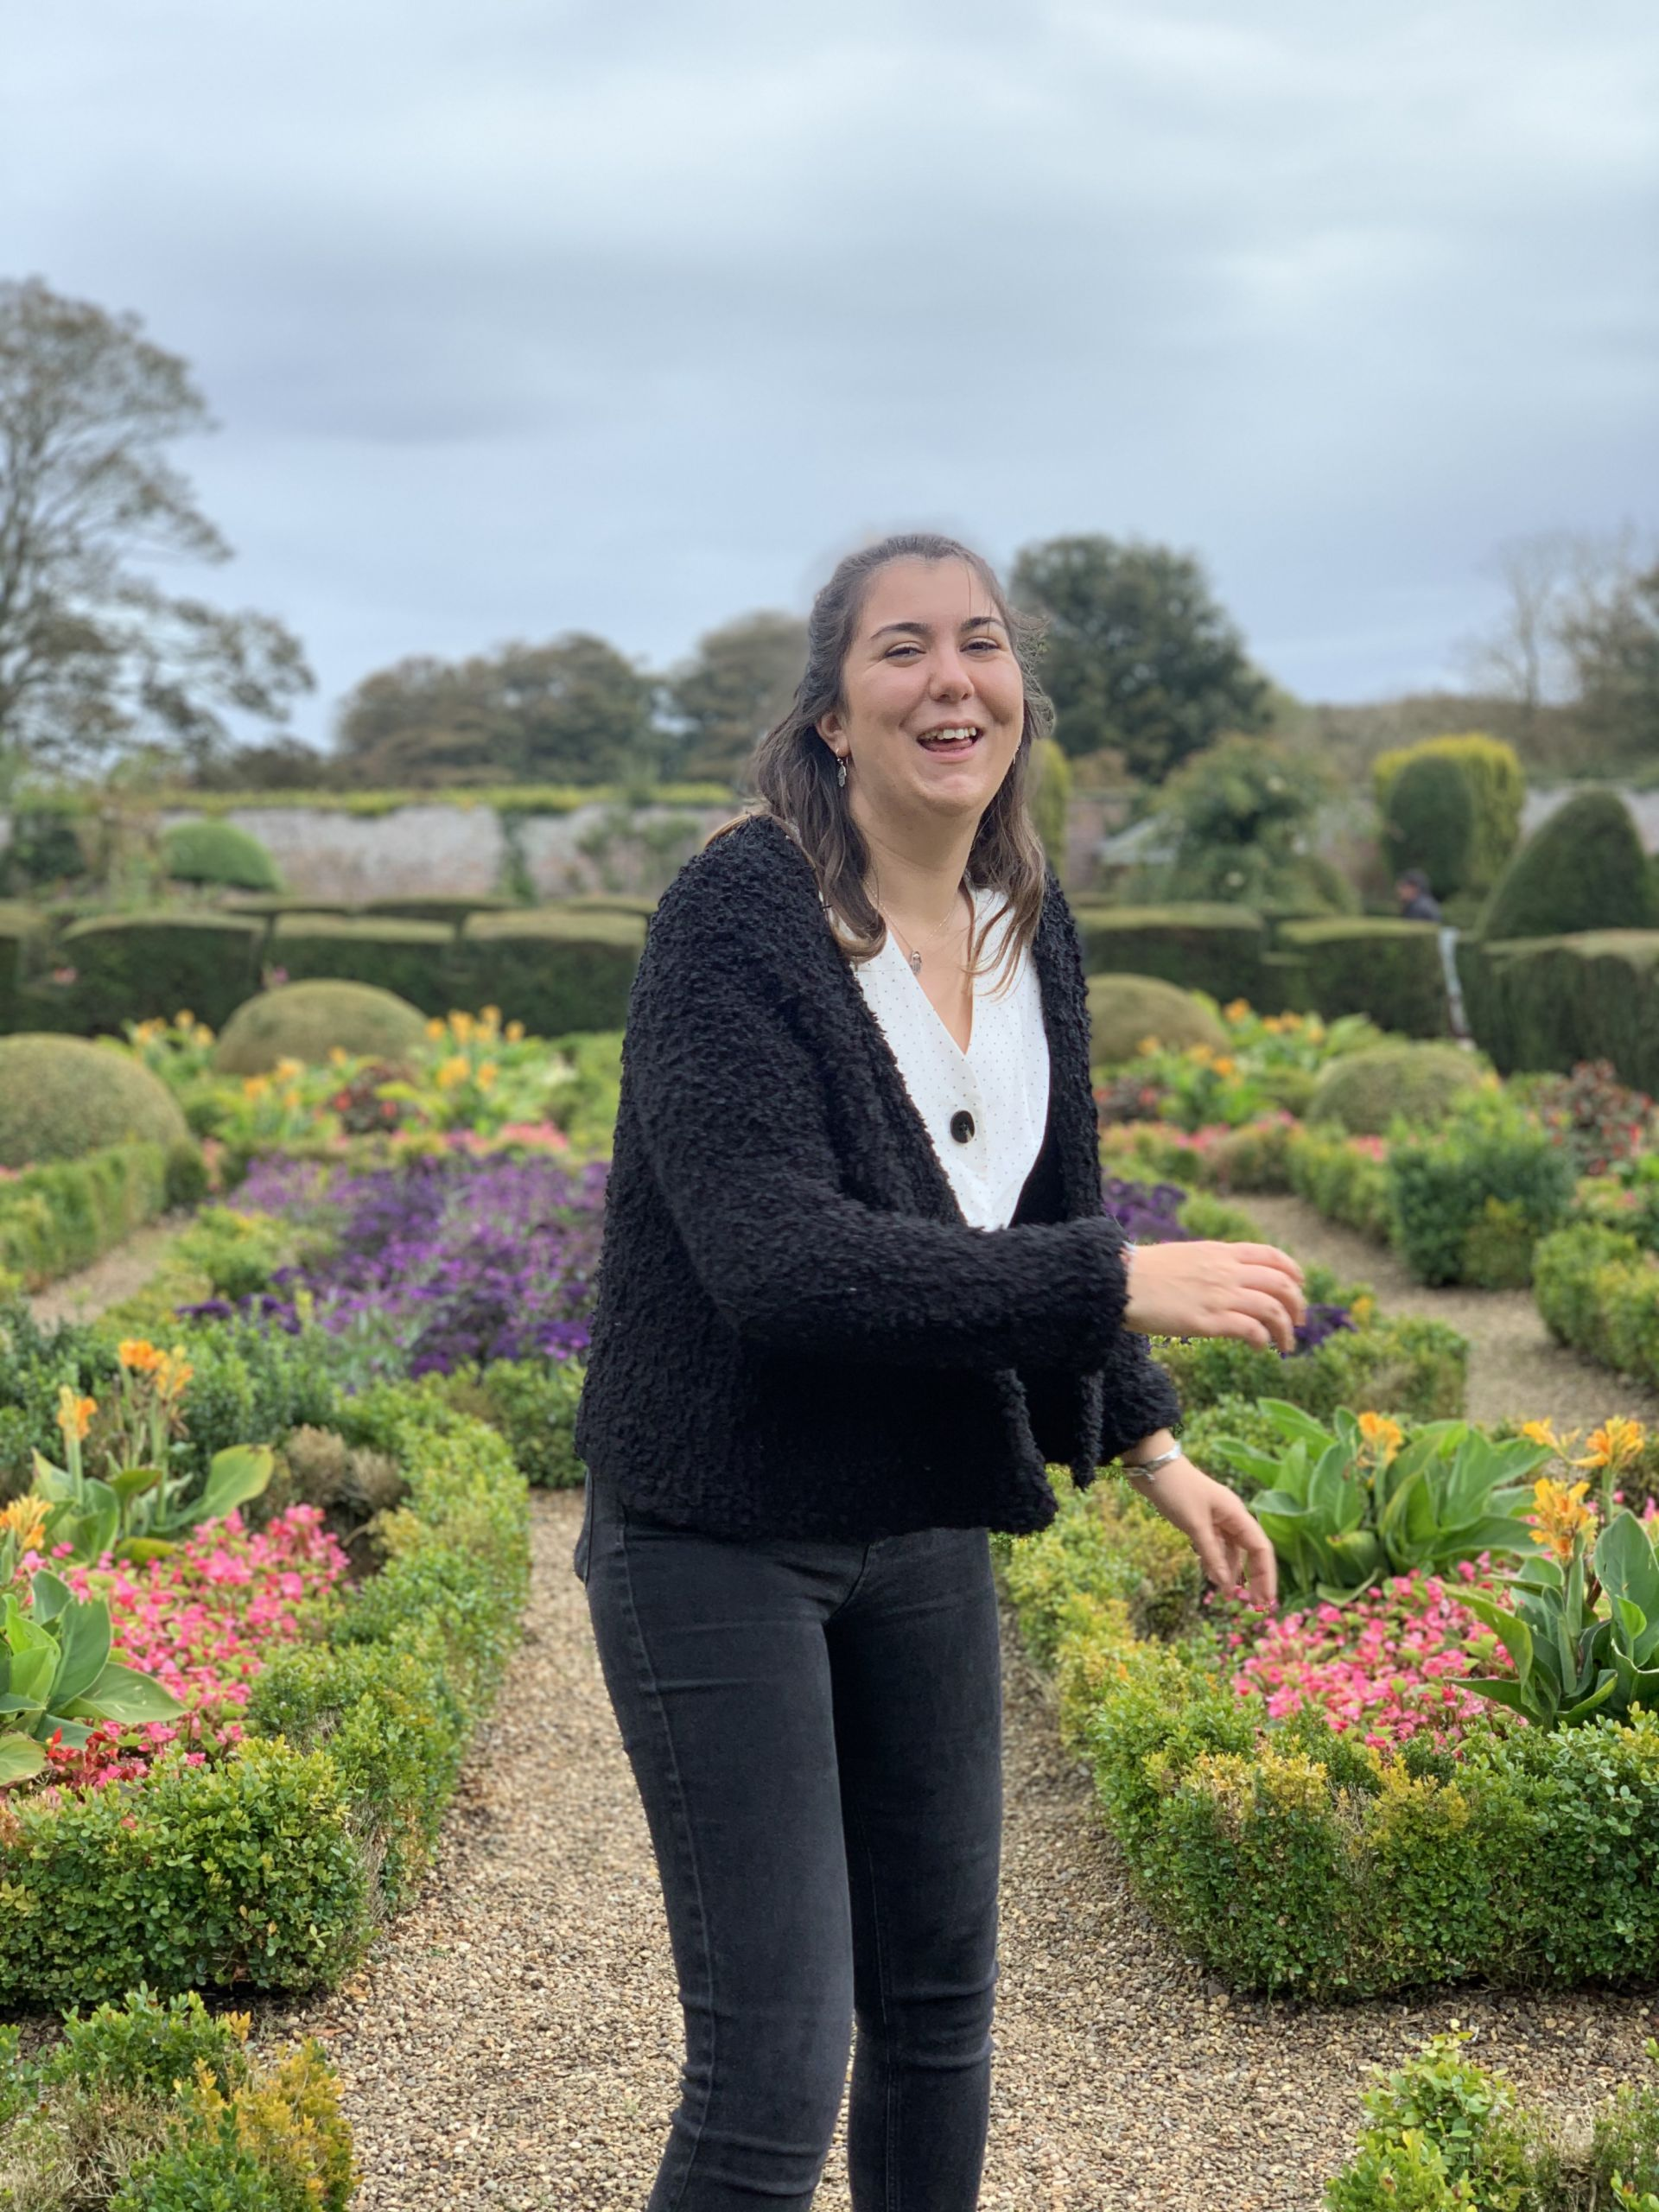 Me stood laughing in the flower gardens at Sewerby Hall